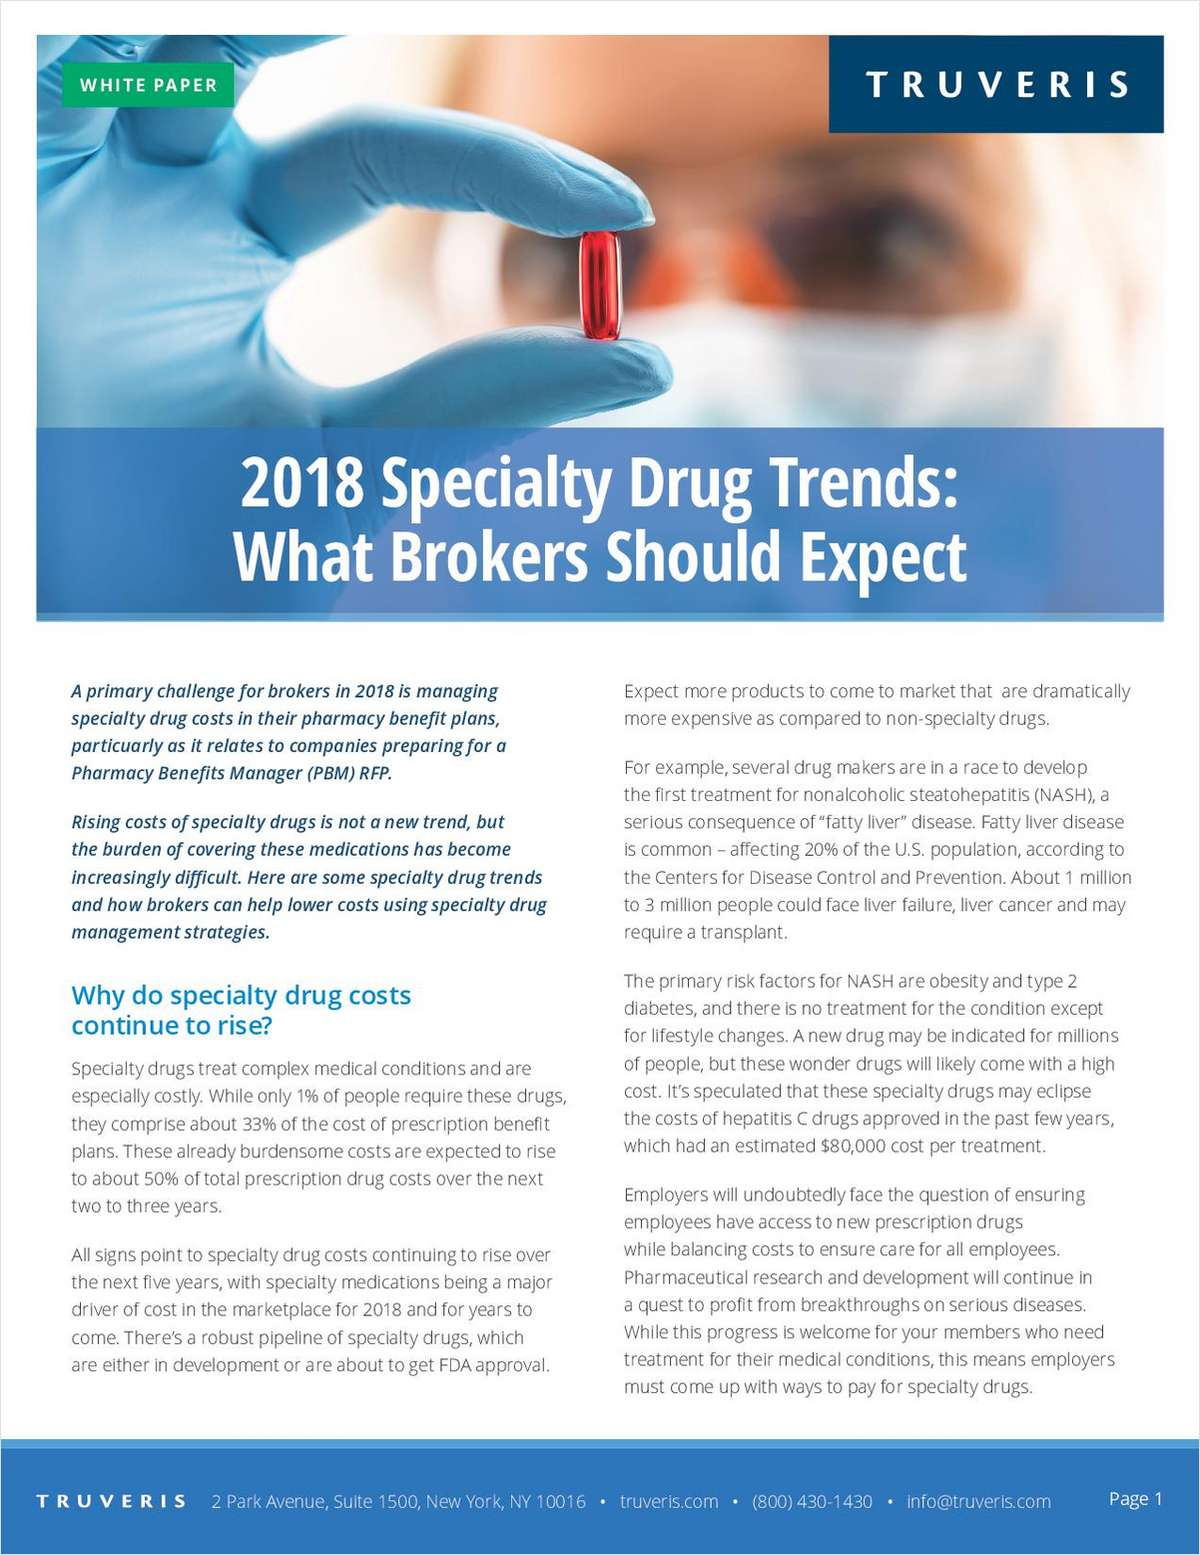 2018 Specialty Drug Trends: What Brokers Should Expect